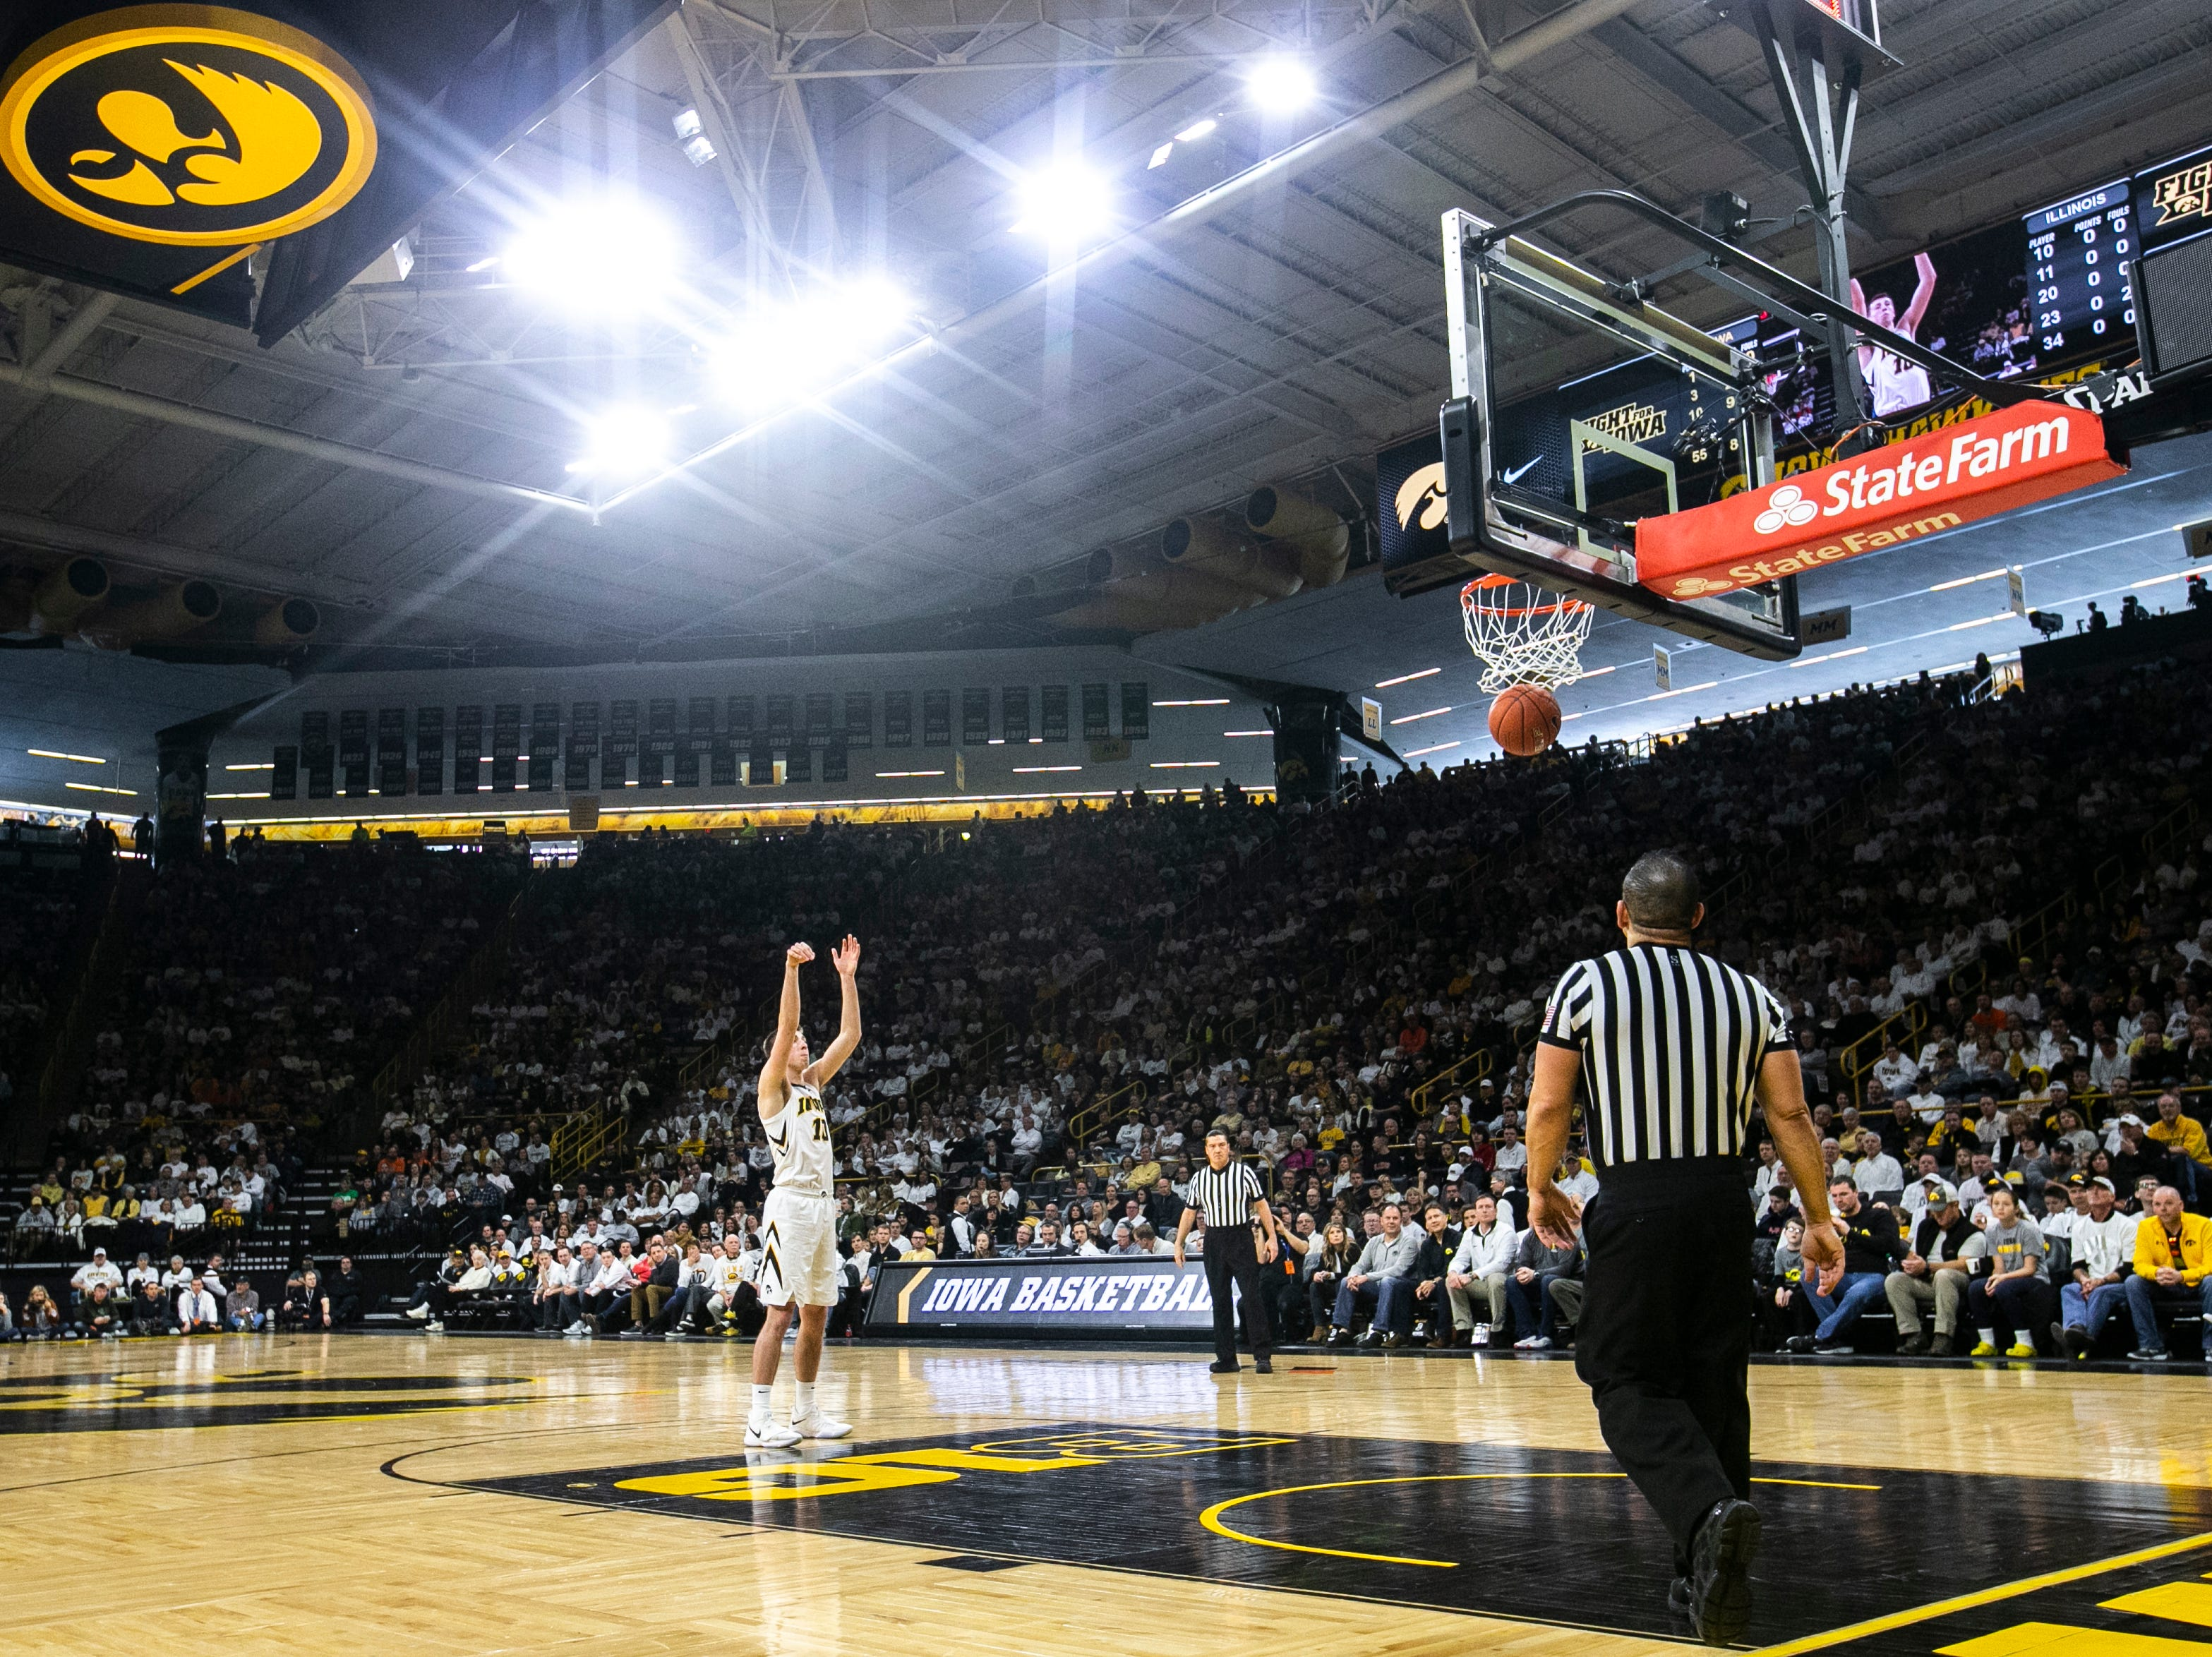 Iowa guard Joe Wieskamp (10) shoots a free-throw during a NCAA Big Ten Conference men's basketball game on Sunday, Jan. 20, 2019, at Carver-Hawkeye Arena in Iowa City, Iowa.